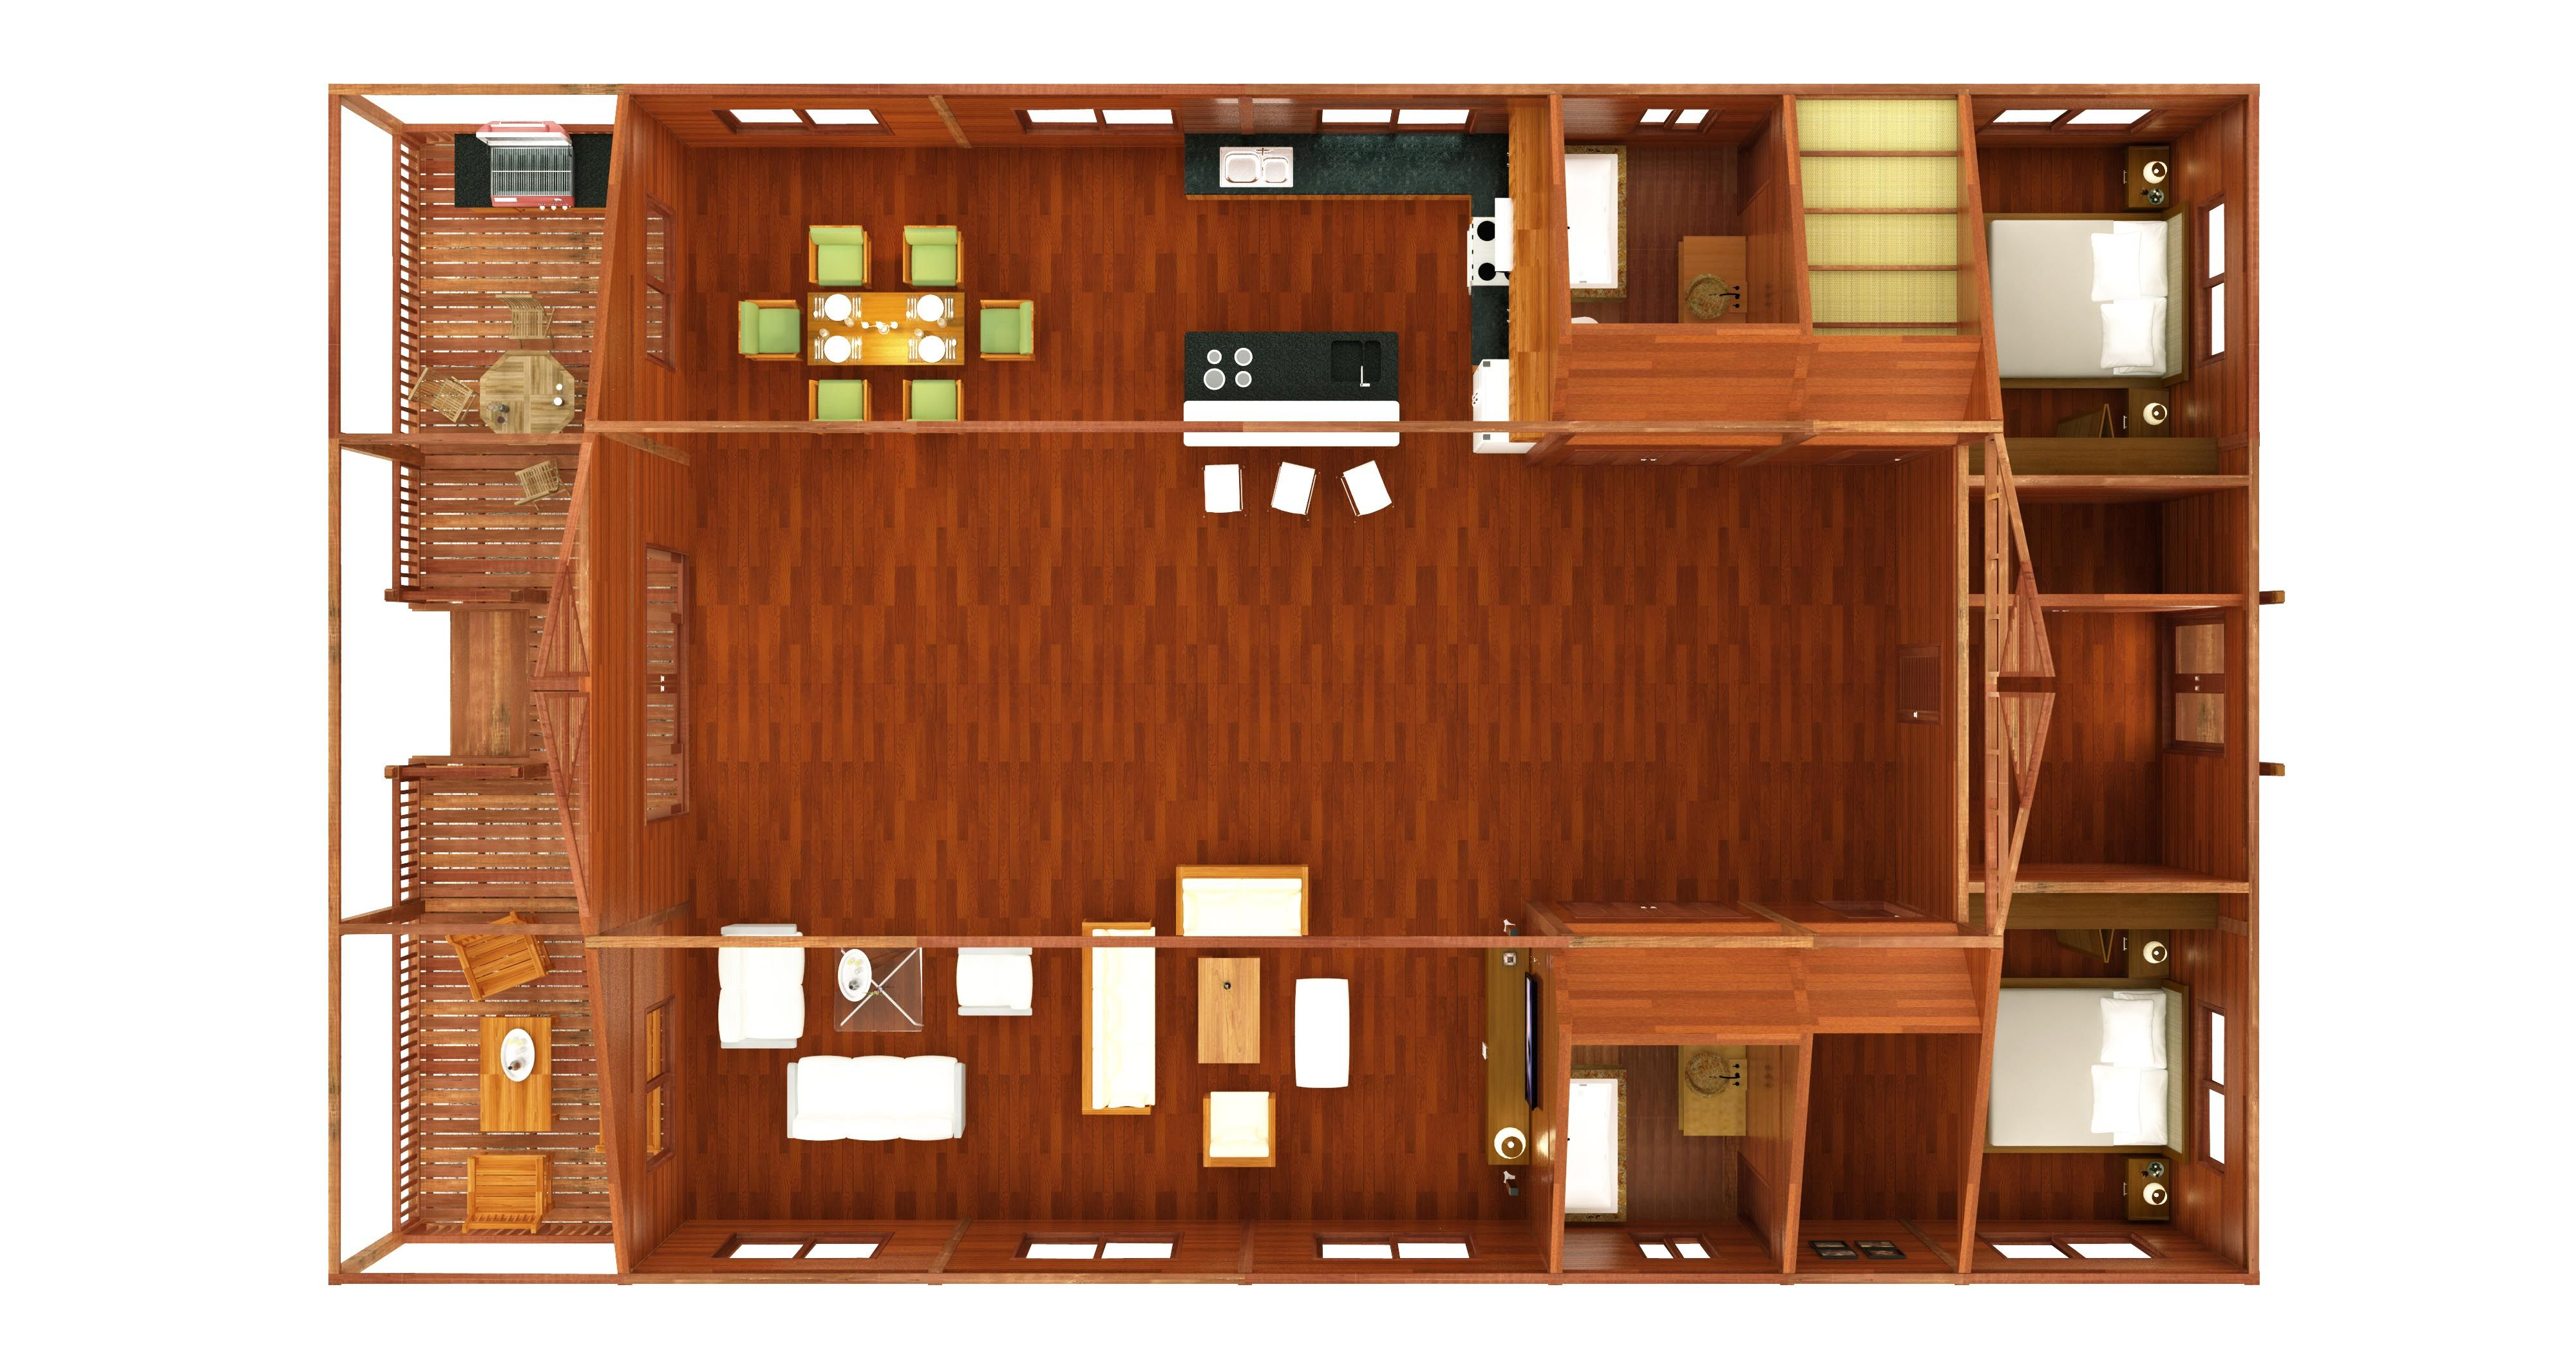 Bali Floor Plans: Our most popular model utilizes larger spans to achieve a spacious 'hang out' area in this Bali Floor Plan.